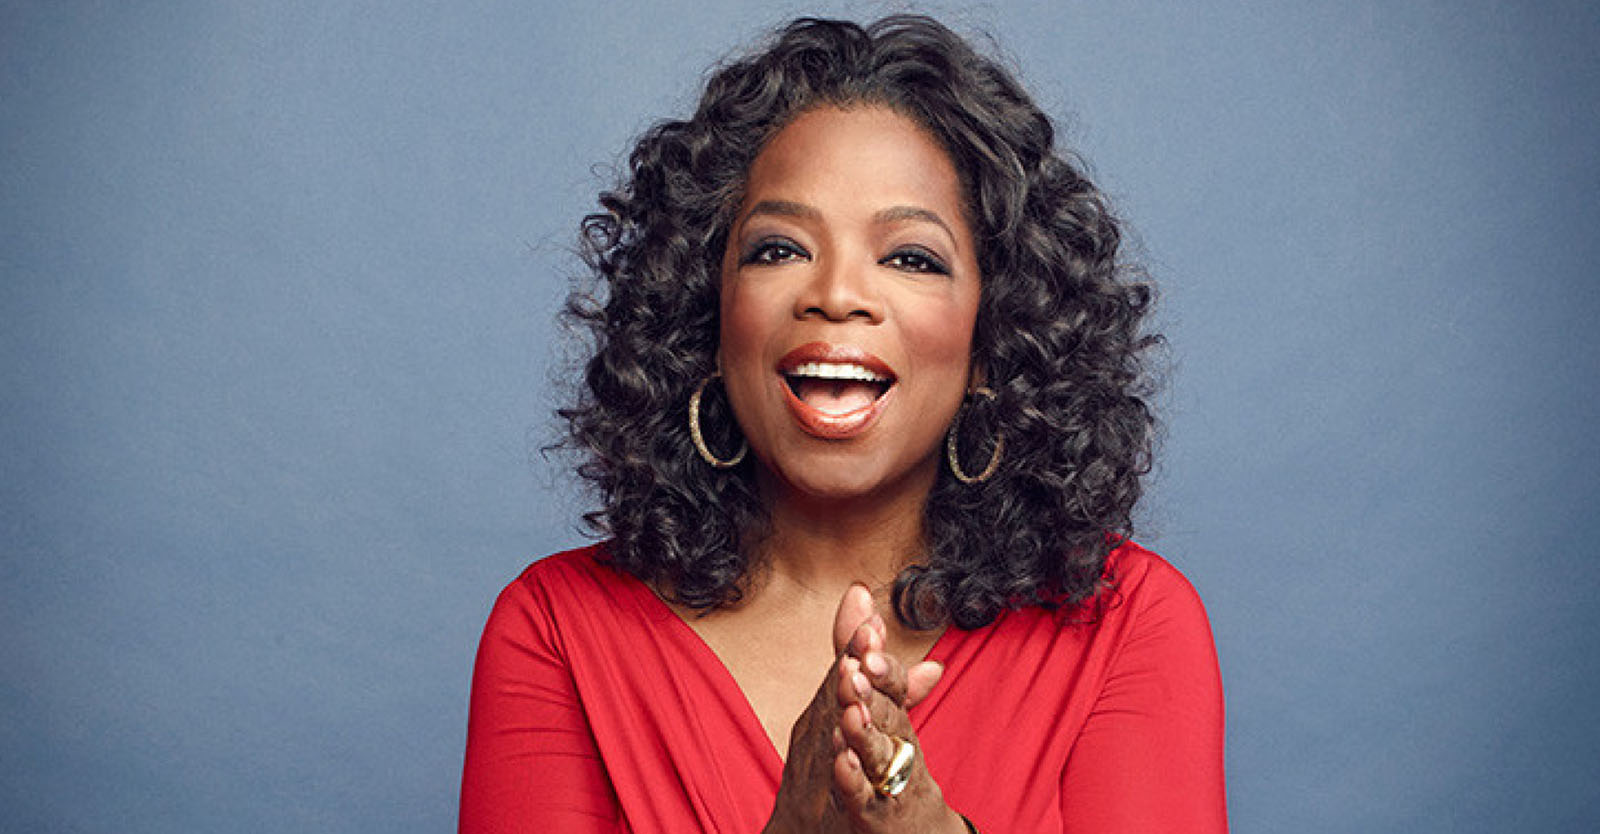 Oprah Winfrey red dress clapping smiling